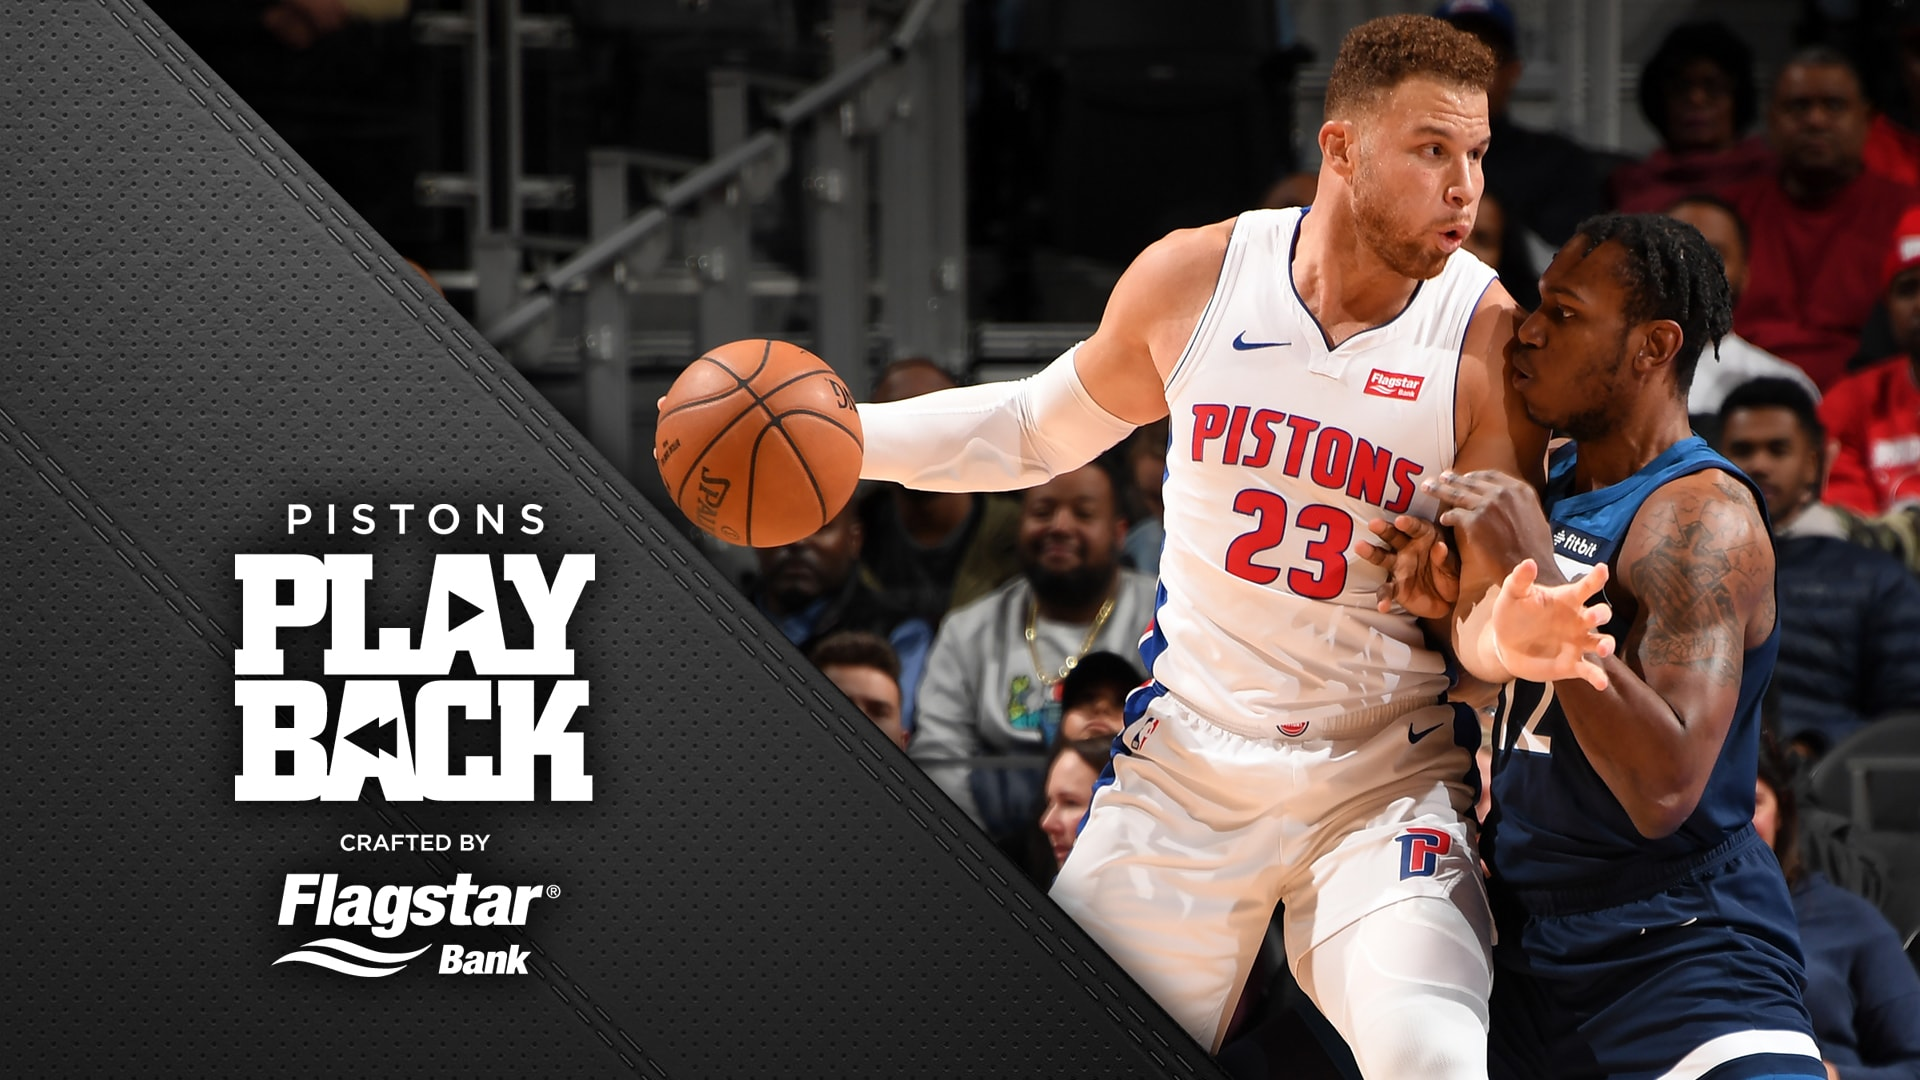 Pistons Playback, crafted by Flagstar: Pistons vs Timberwolves